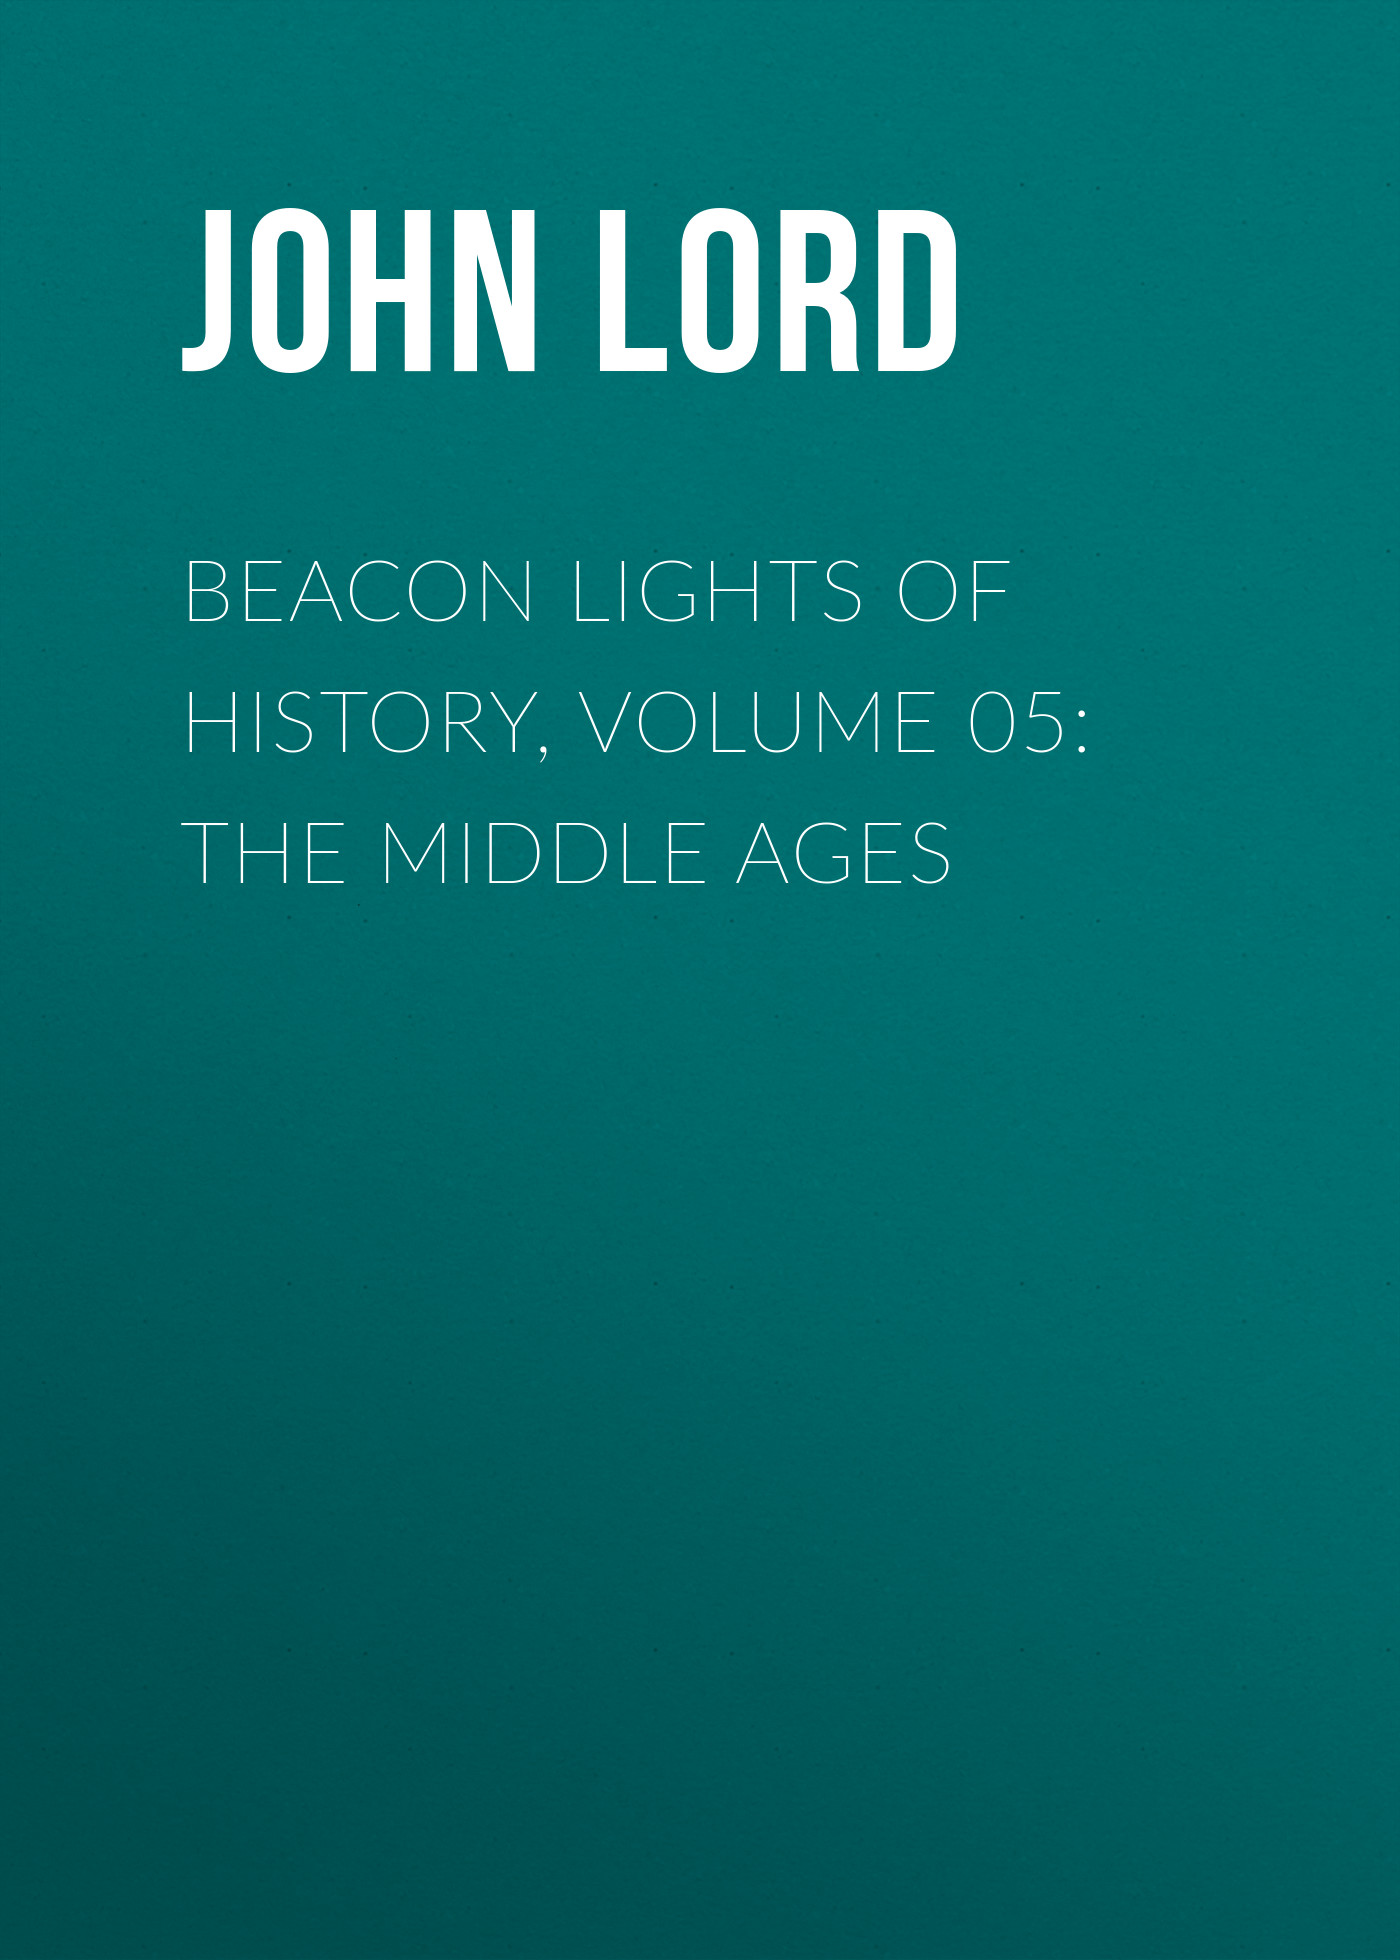 John Lord Beacon Lights of History, Volume 05: The Middle Ages john richard green history of the english people volume 4